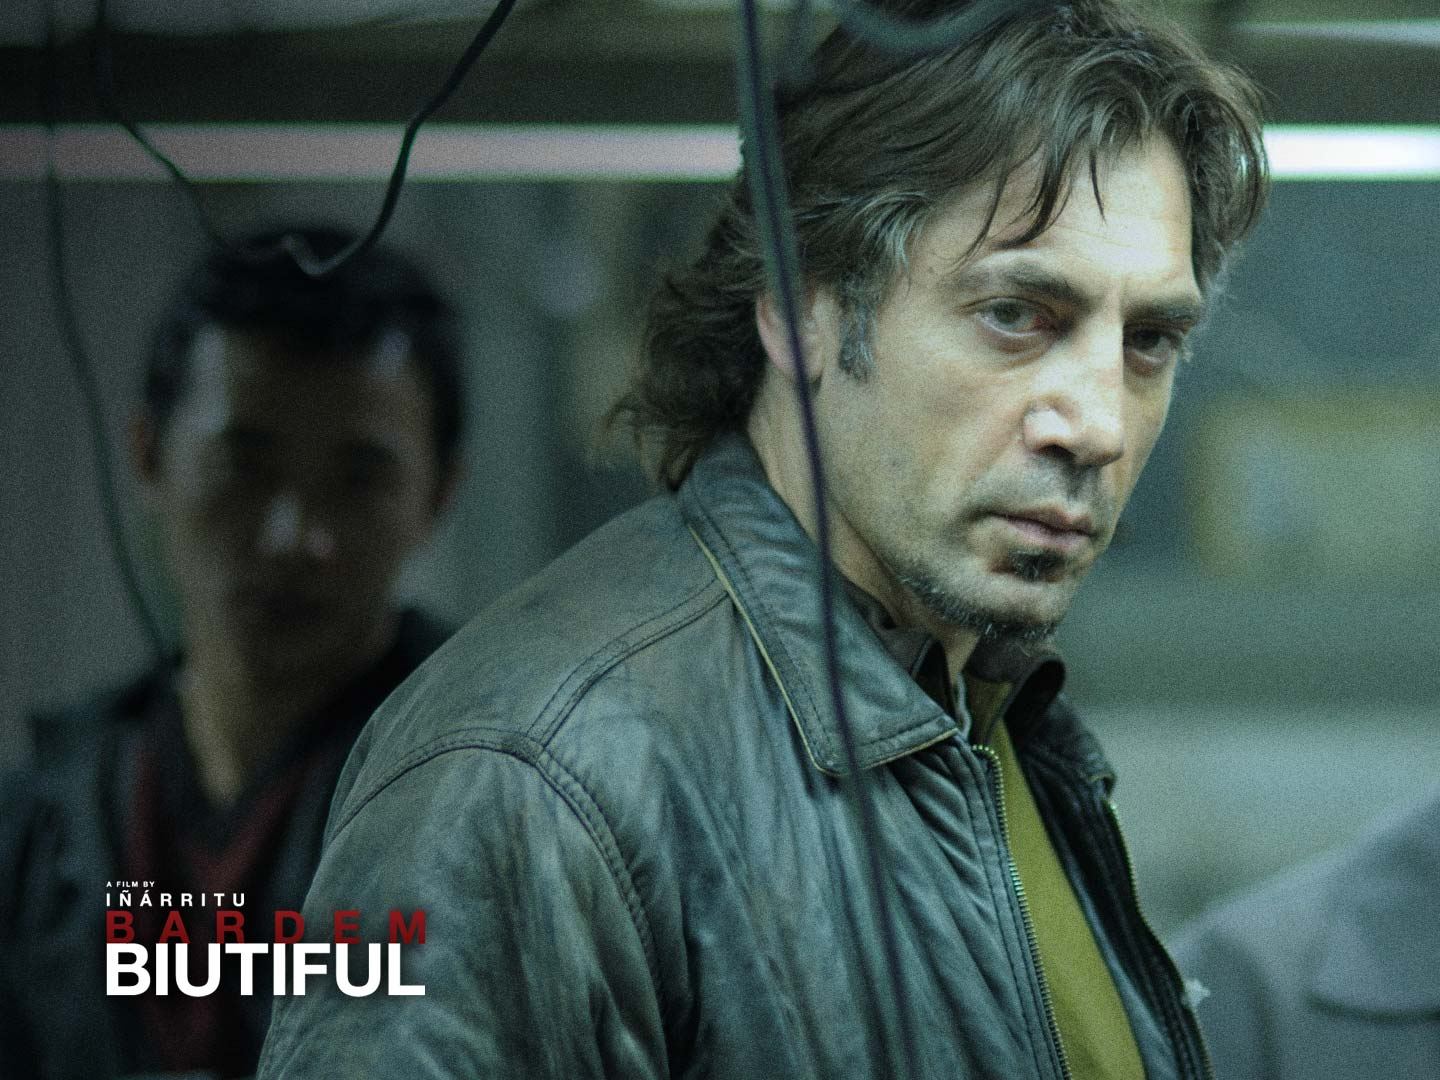 Biutiful Wallpaper download - movie director Alejandro Gonzalez Inarritu behind the scenes during the filming of his latest film staring Javier Bardem.